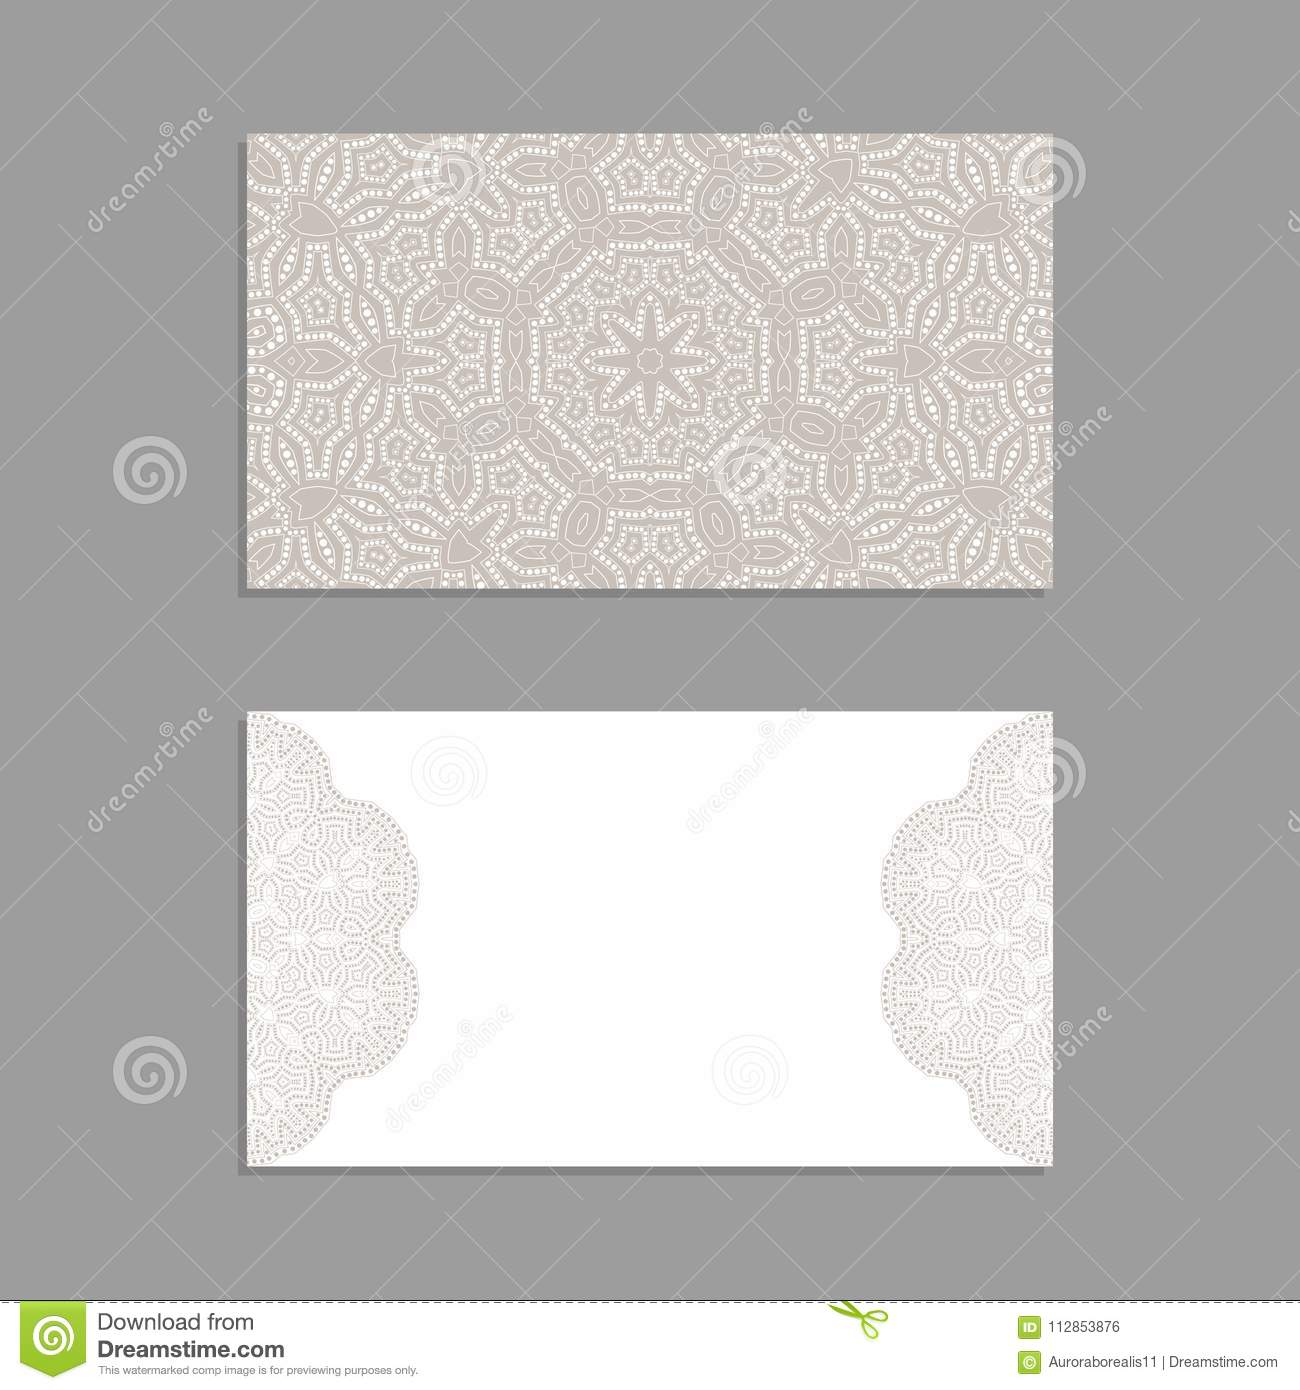 Templates For Greeting And Business Cards, Brochures, Covers With ...